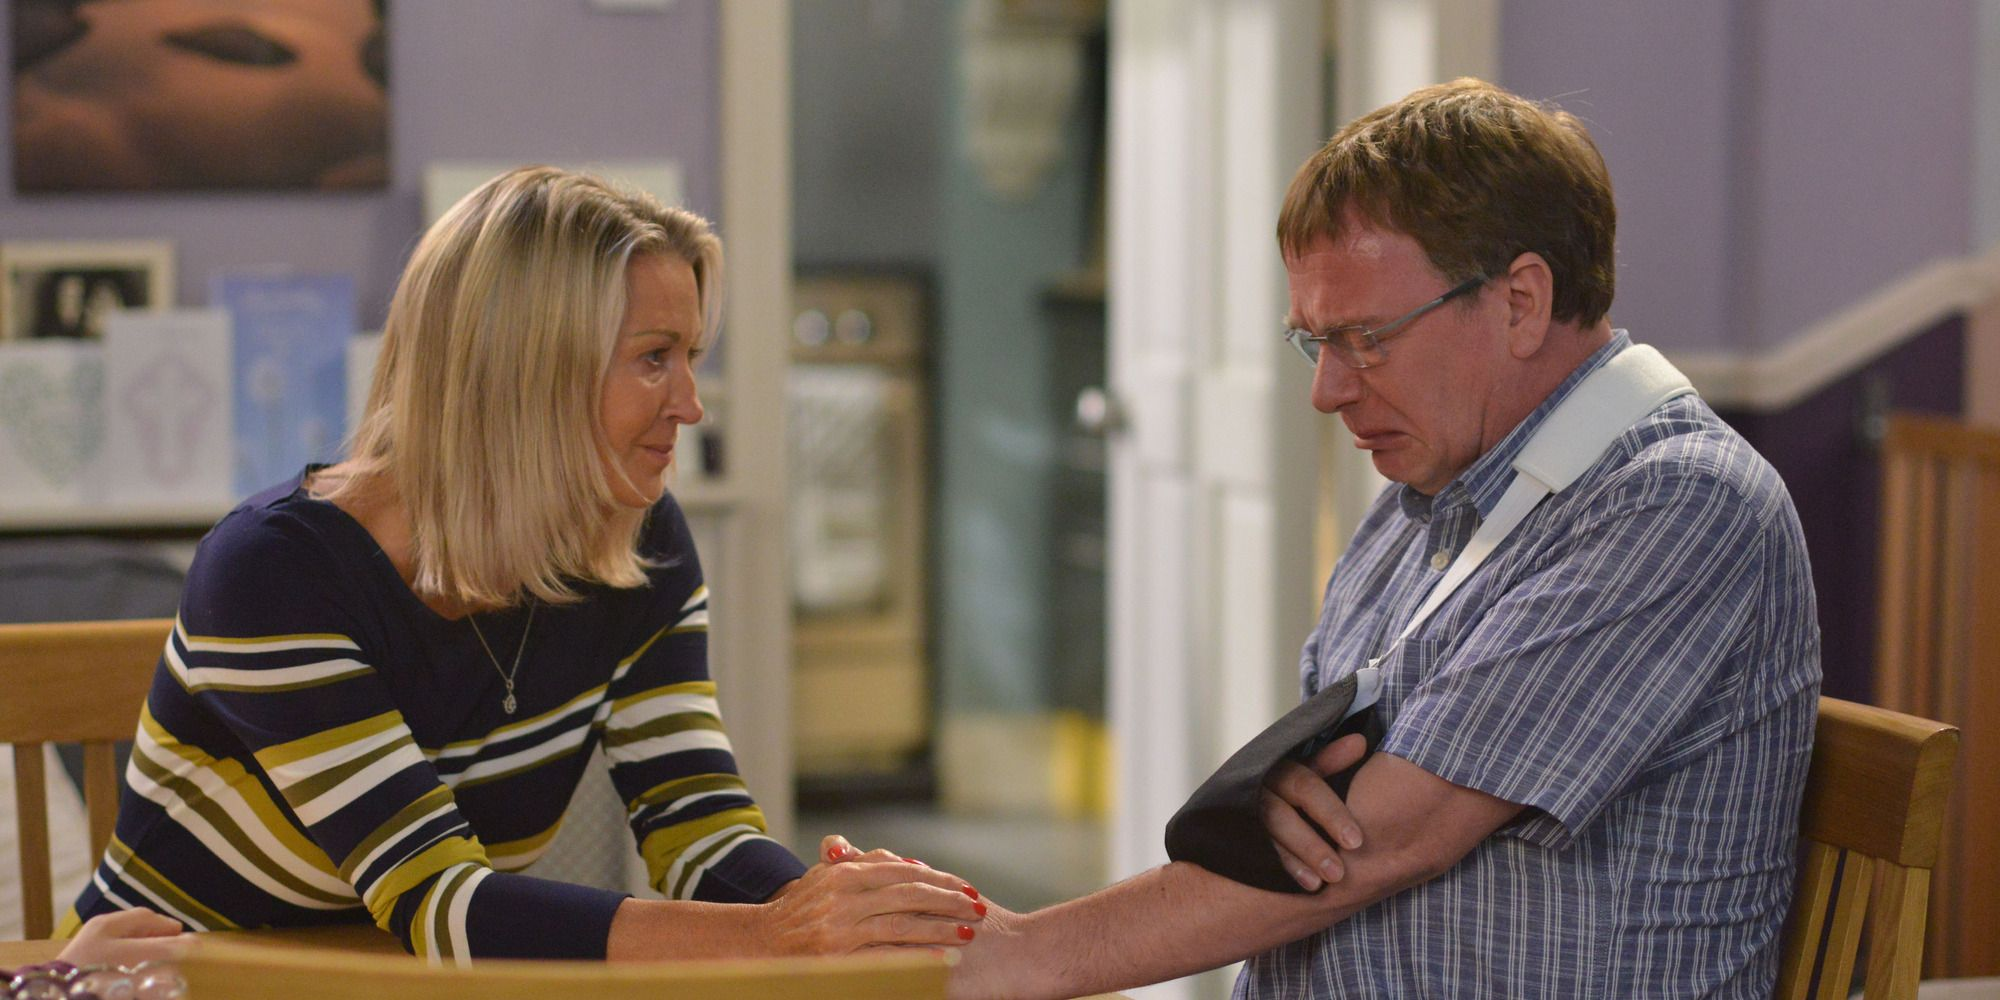 Kathy Beale tries to support Ian and Ben in EastEnders